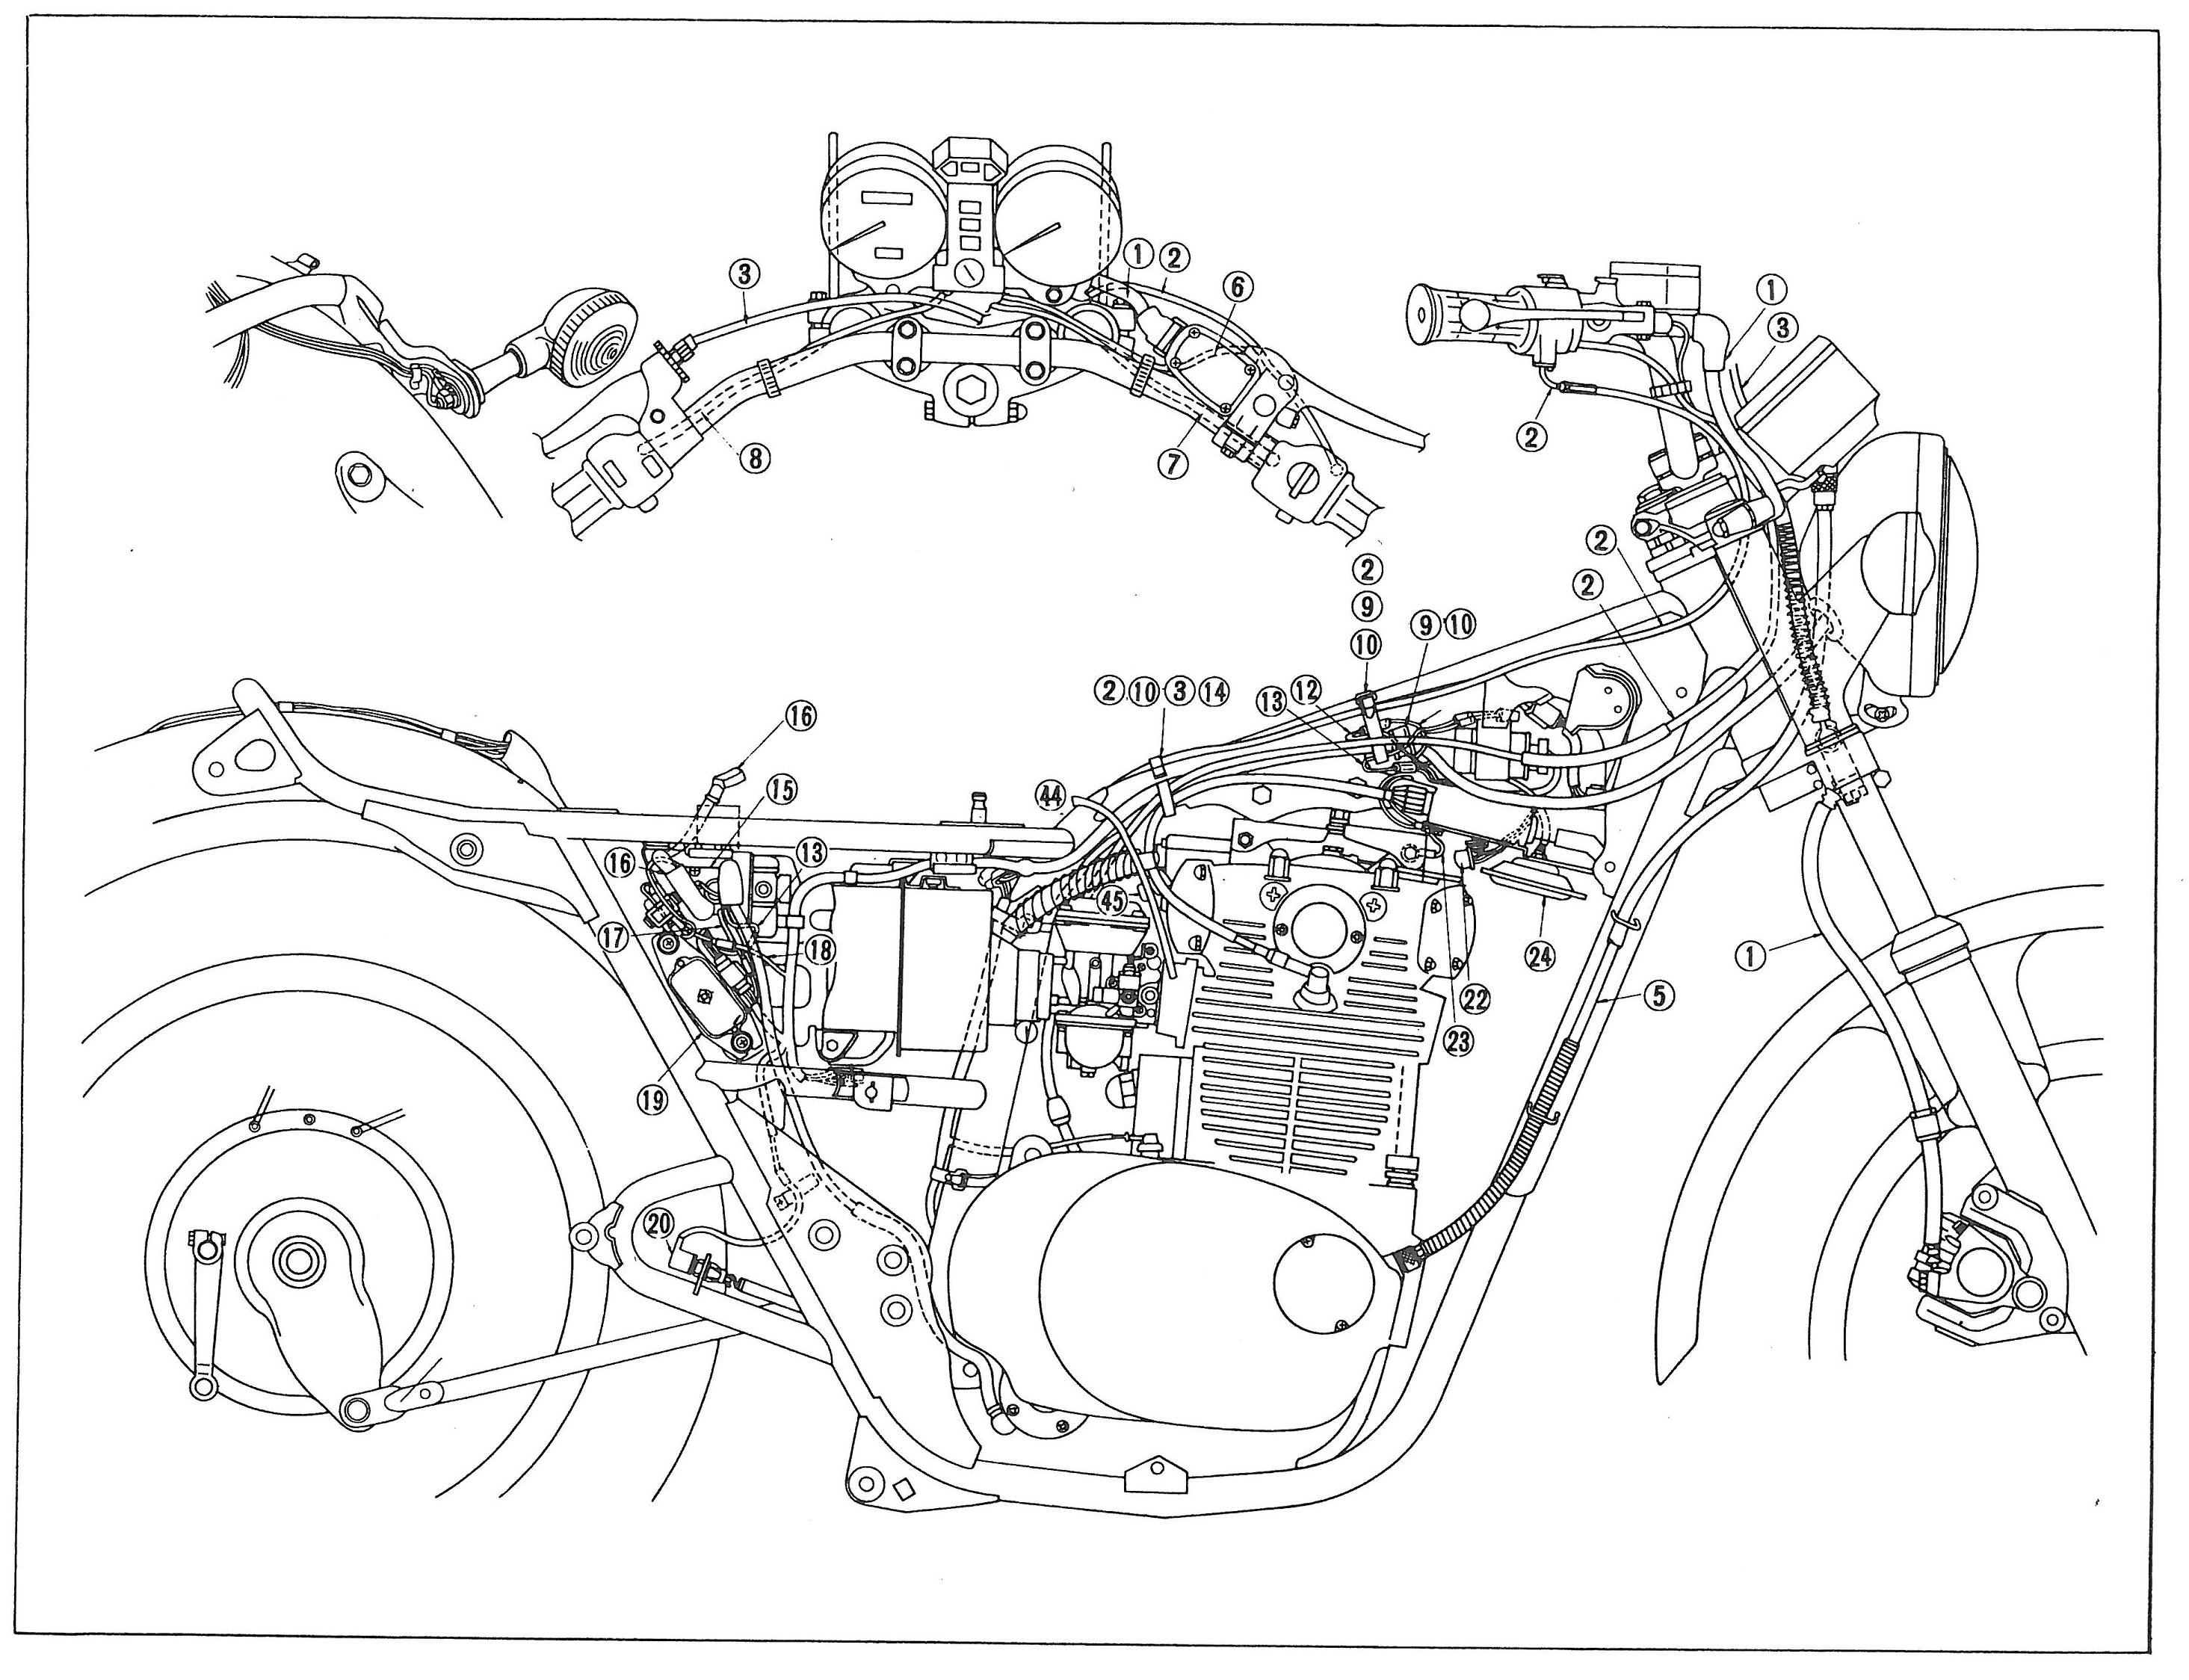 hight resolution of 1981 xs650 engine diagram wiring diagram used xs650 engine diagram